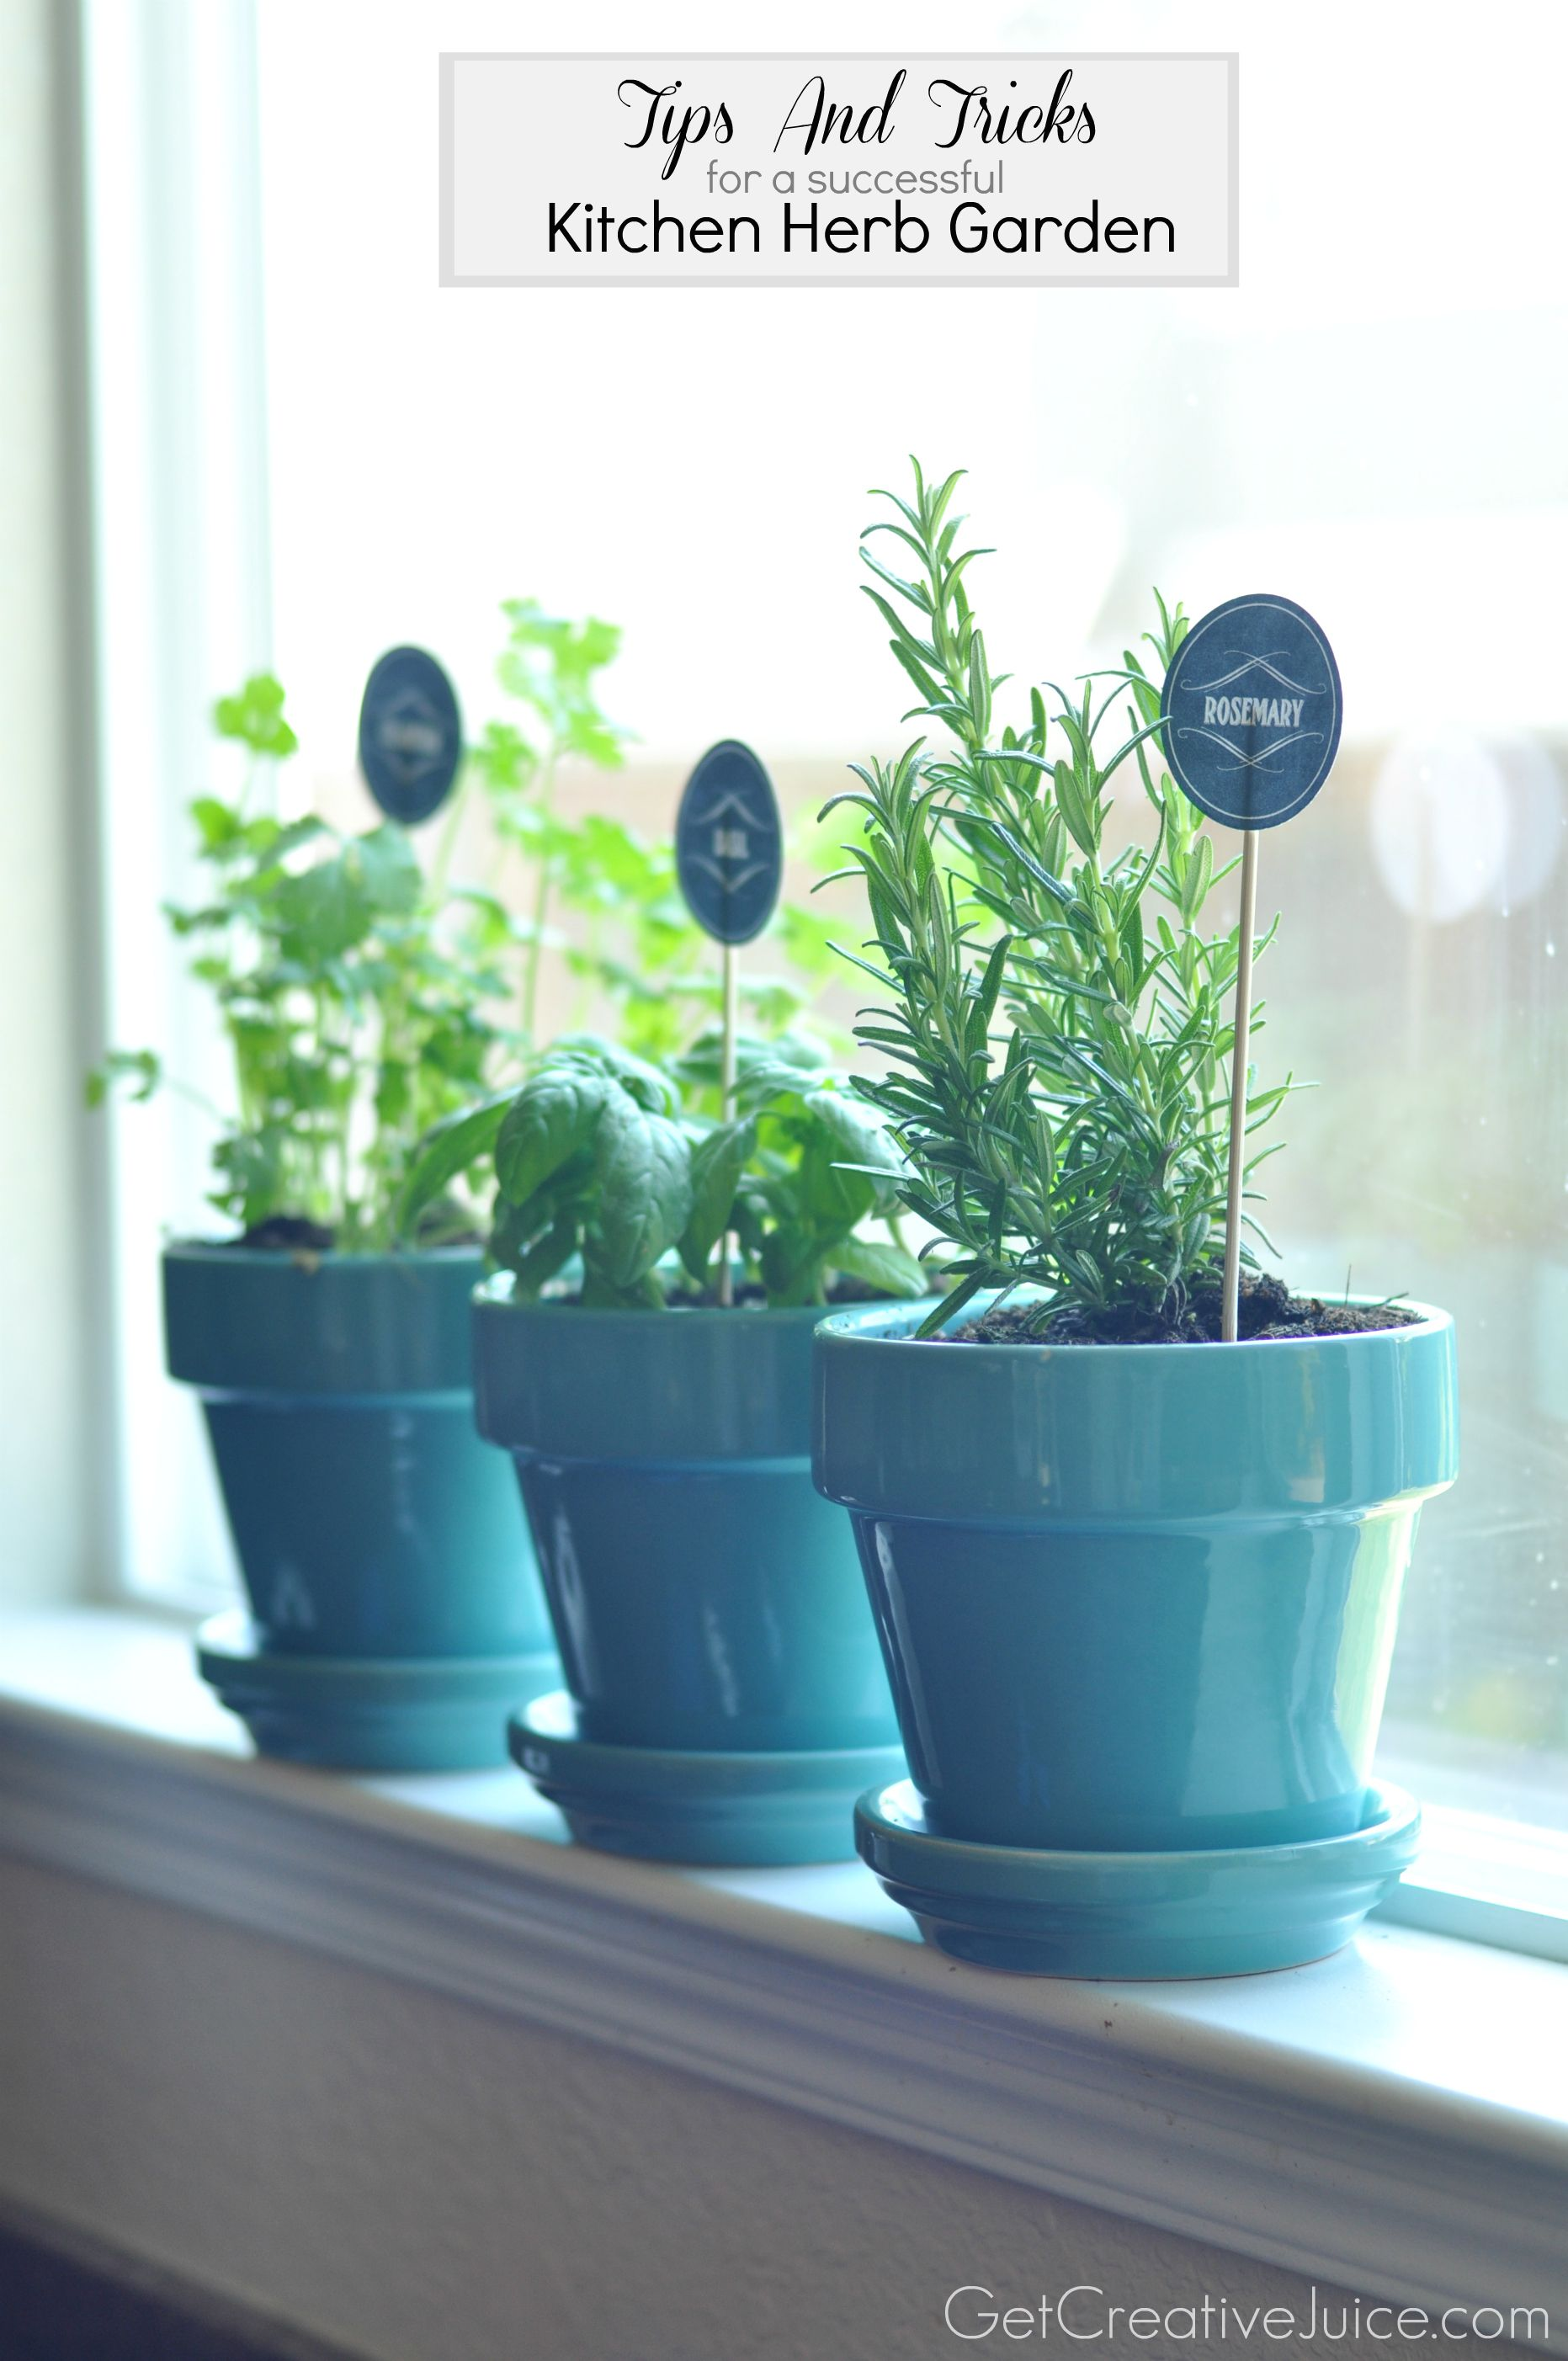 Indoor Window Sill Herb Planter Part - 50: Tips And Tricks To Maintaining An Indoor Kitchen Herb Garden - Creative  Juice Nice Window Sill Display.